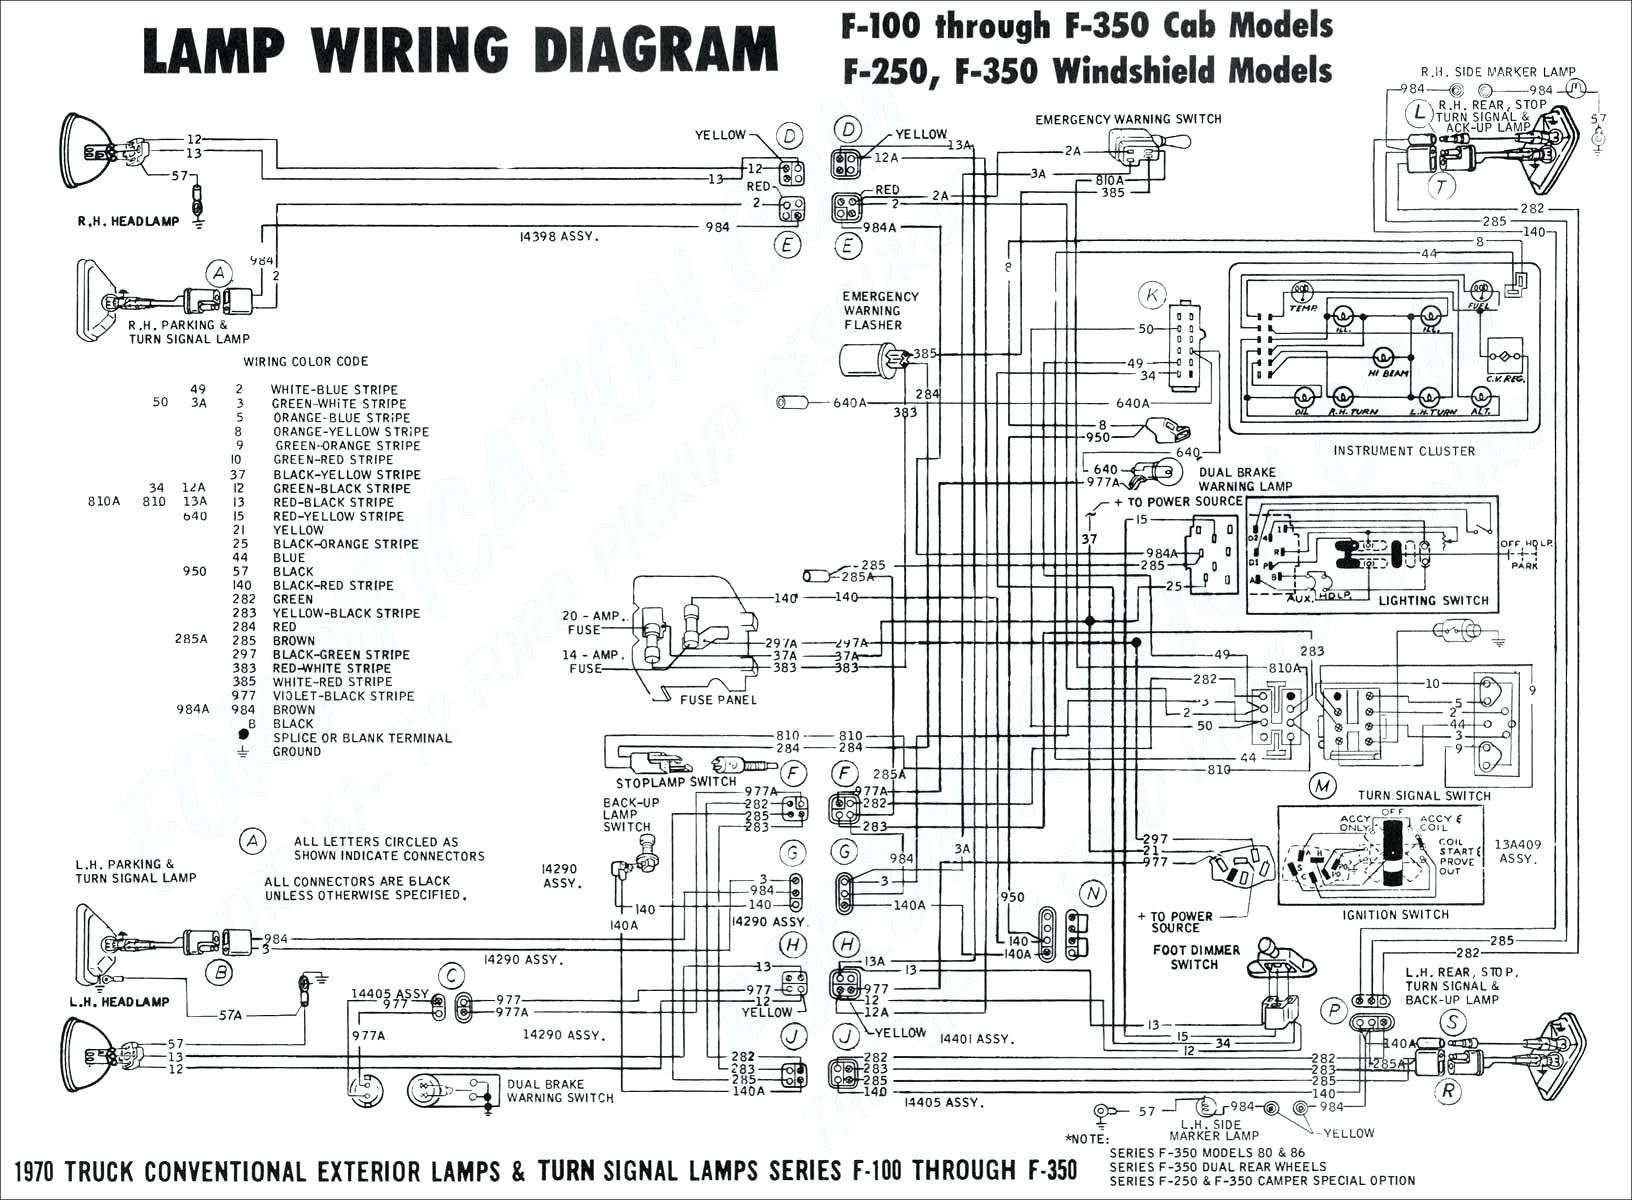 Wiring Diagram for 2000 ford F250 Taillights Pool Light Wiring Diagram Of Wiring Diagram for 2000 ford F250 Taillights